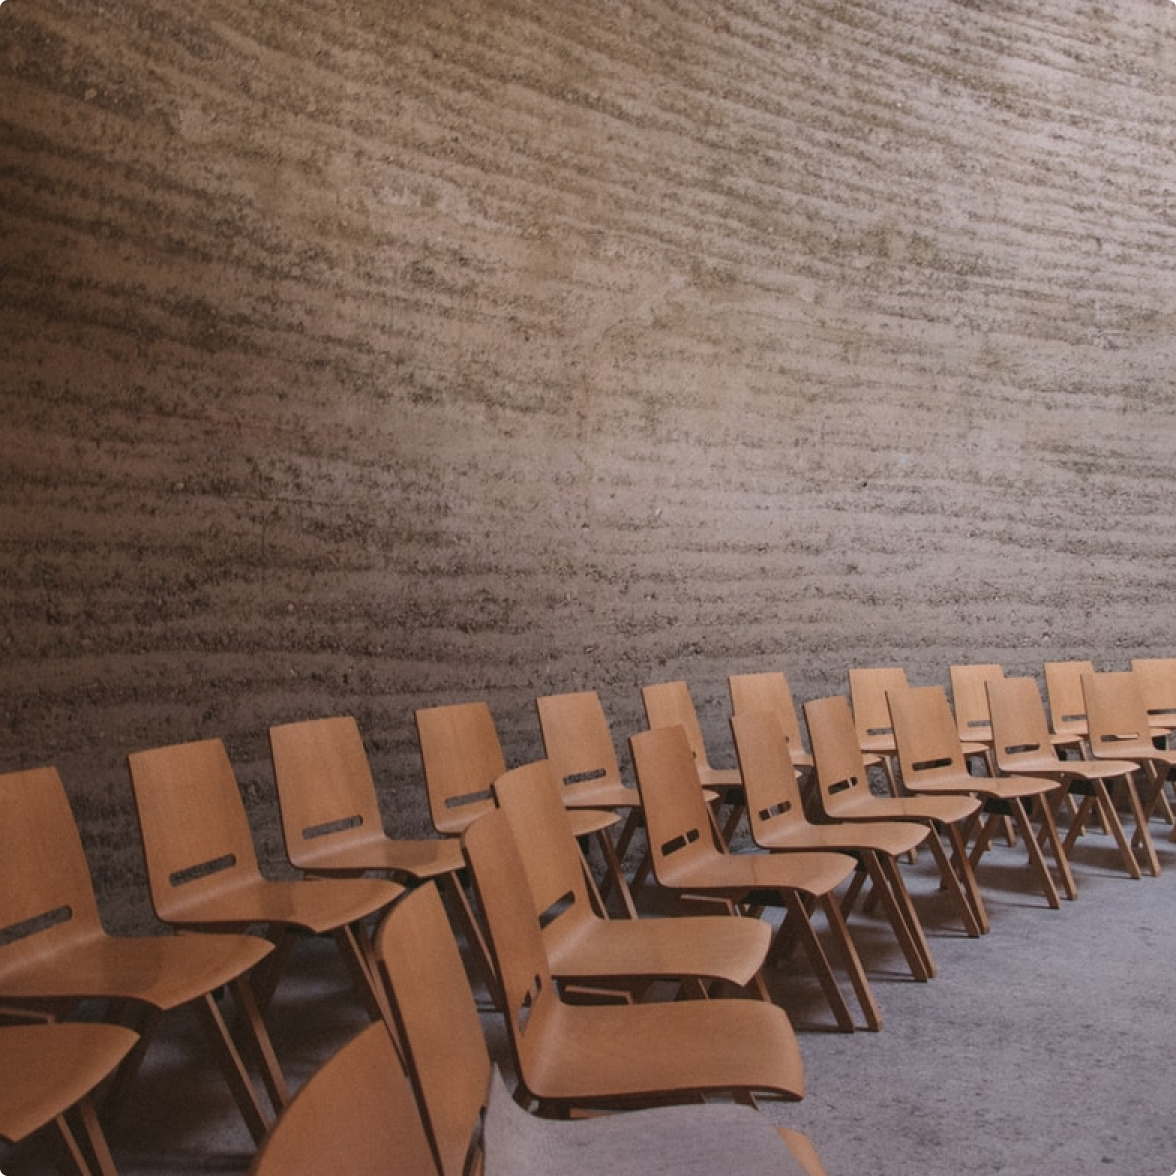 Chairs set up in a room